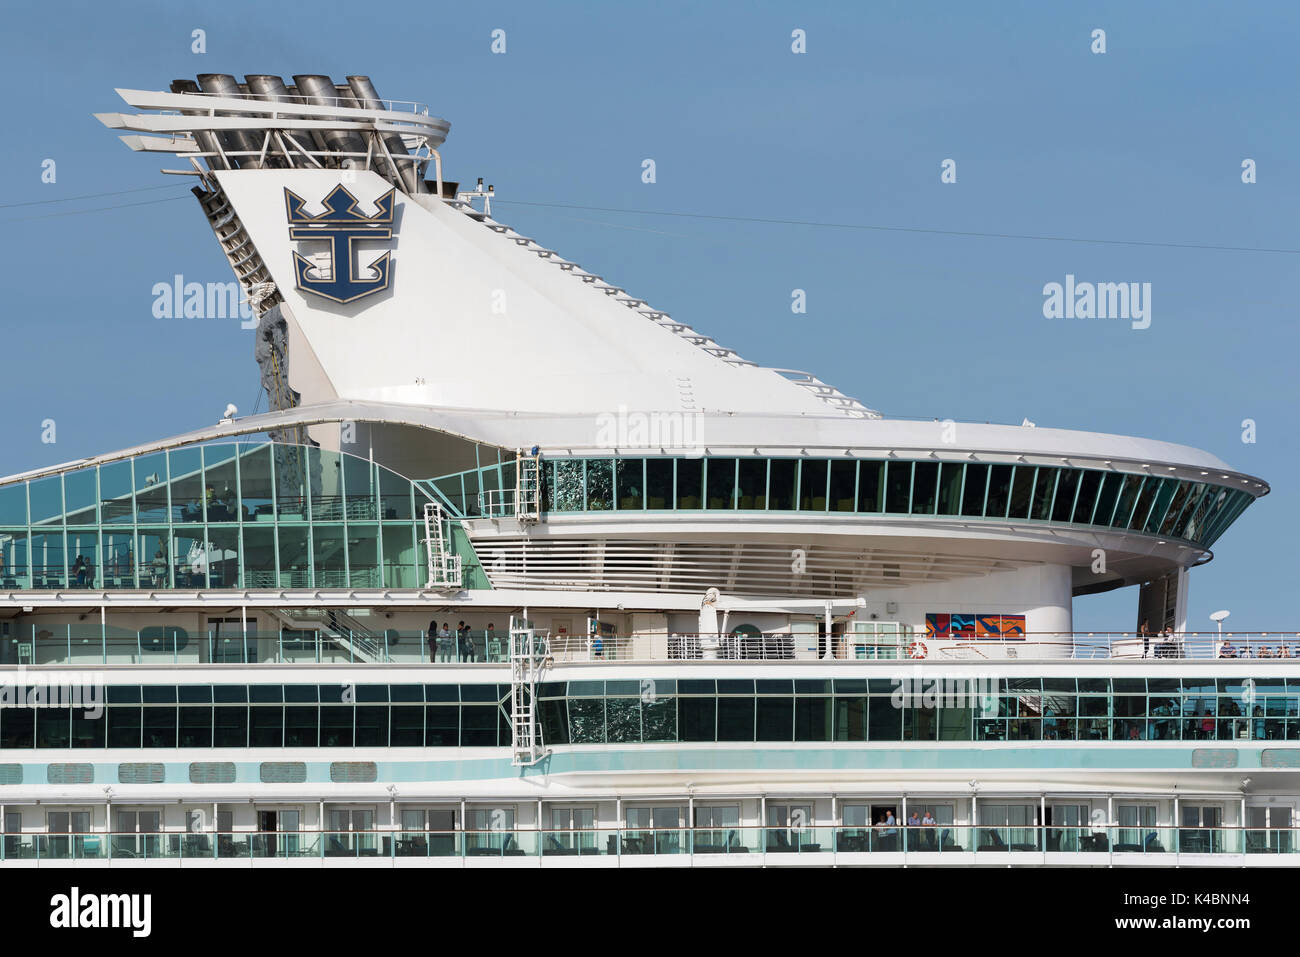 Section of the upper decks of the cruise ship Navigator of the Seas underway on Southampton Water England UK. August 2017 - Stock Image